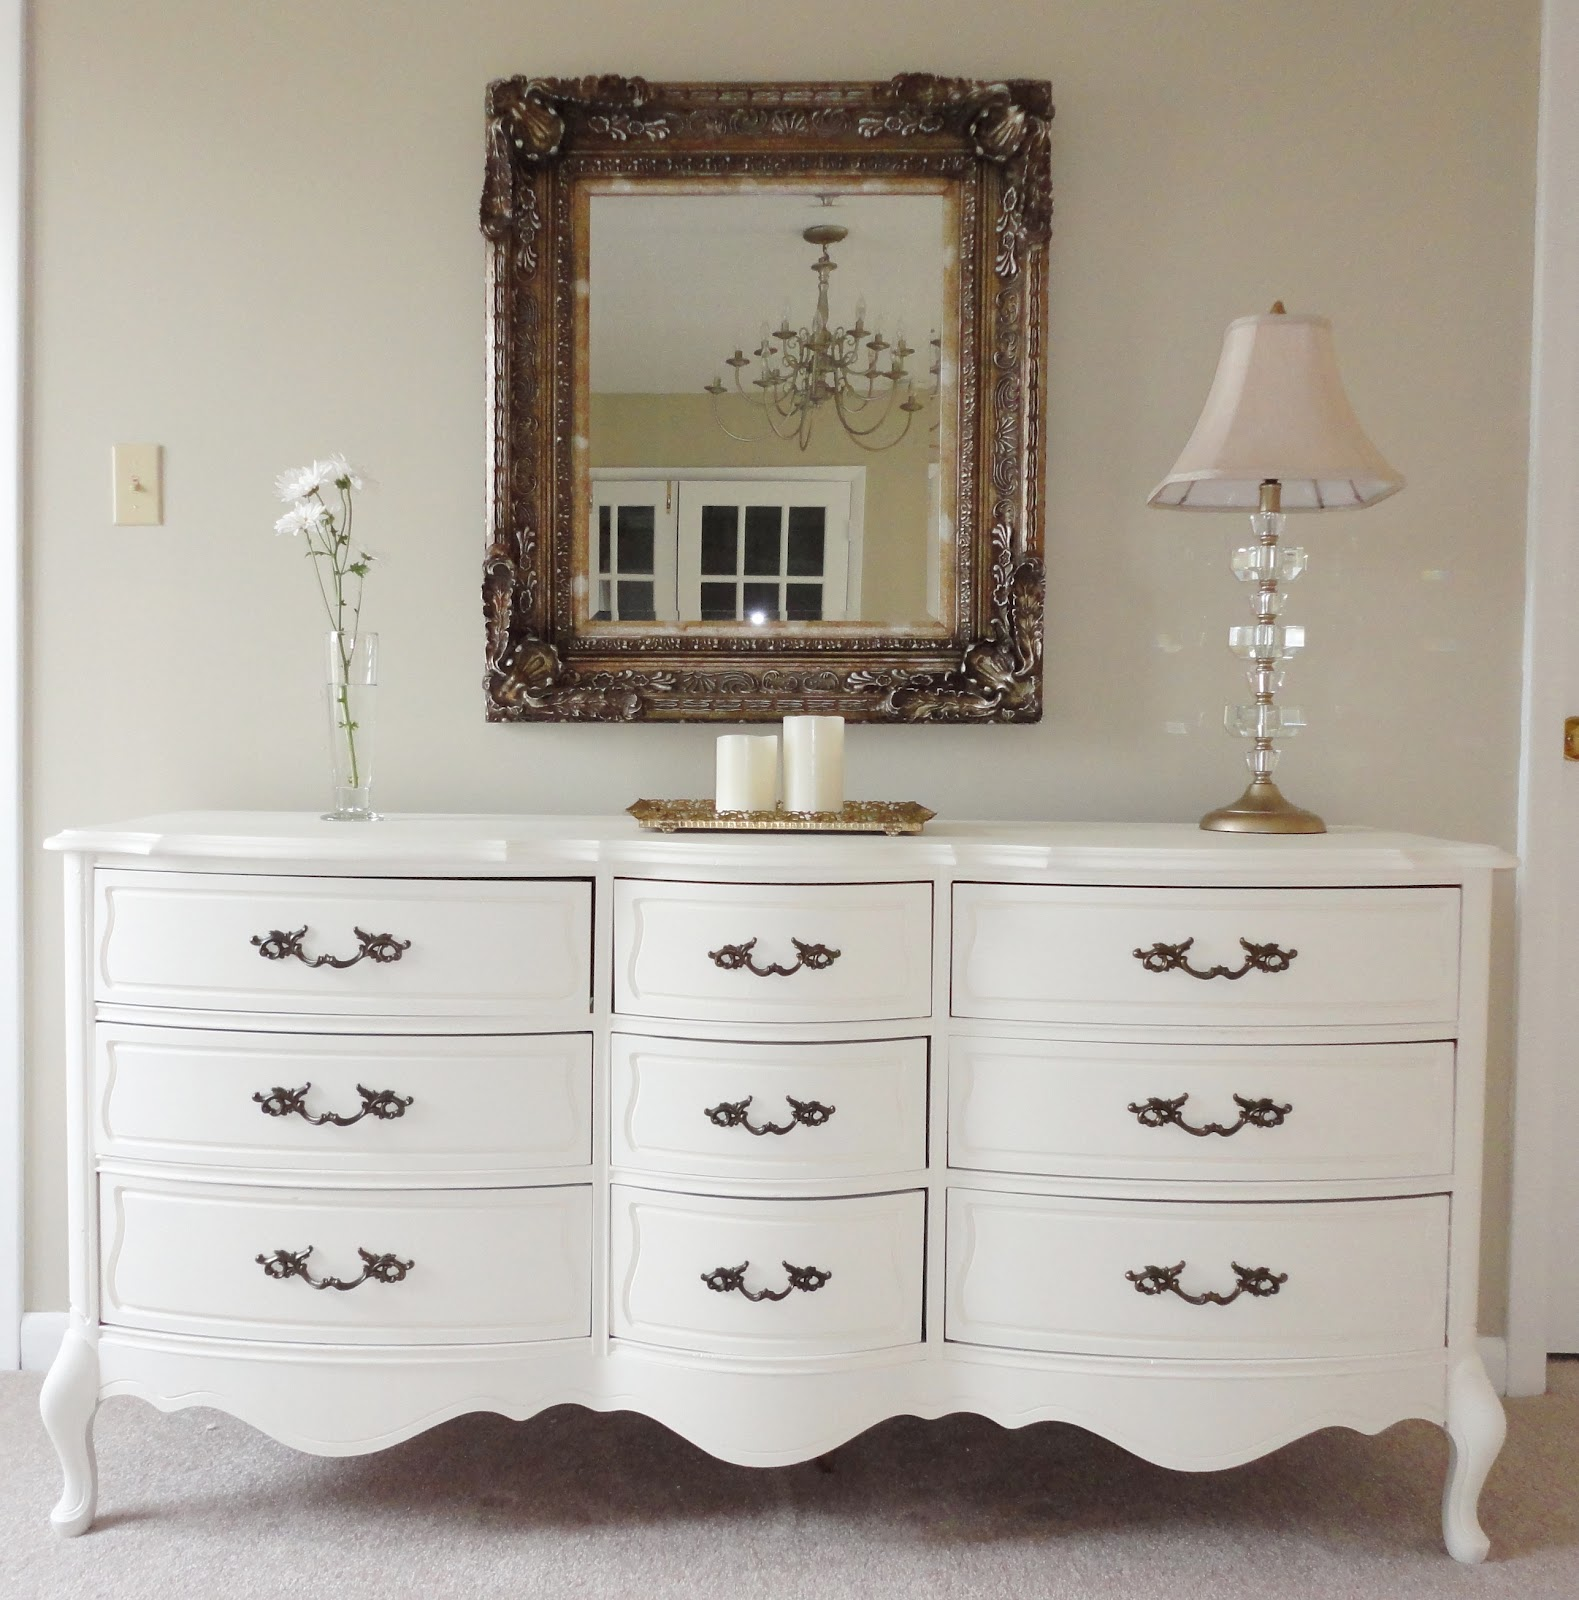 I usually change out the hardware when I redo furniture, but the hardware  on this piece was pretty, so I just left it alone. - LiveLoveDIY: The Beginner's Guide To Painting Furniture